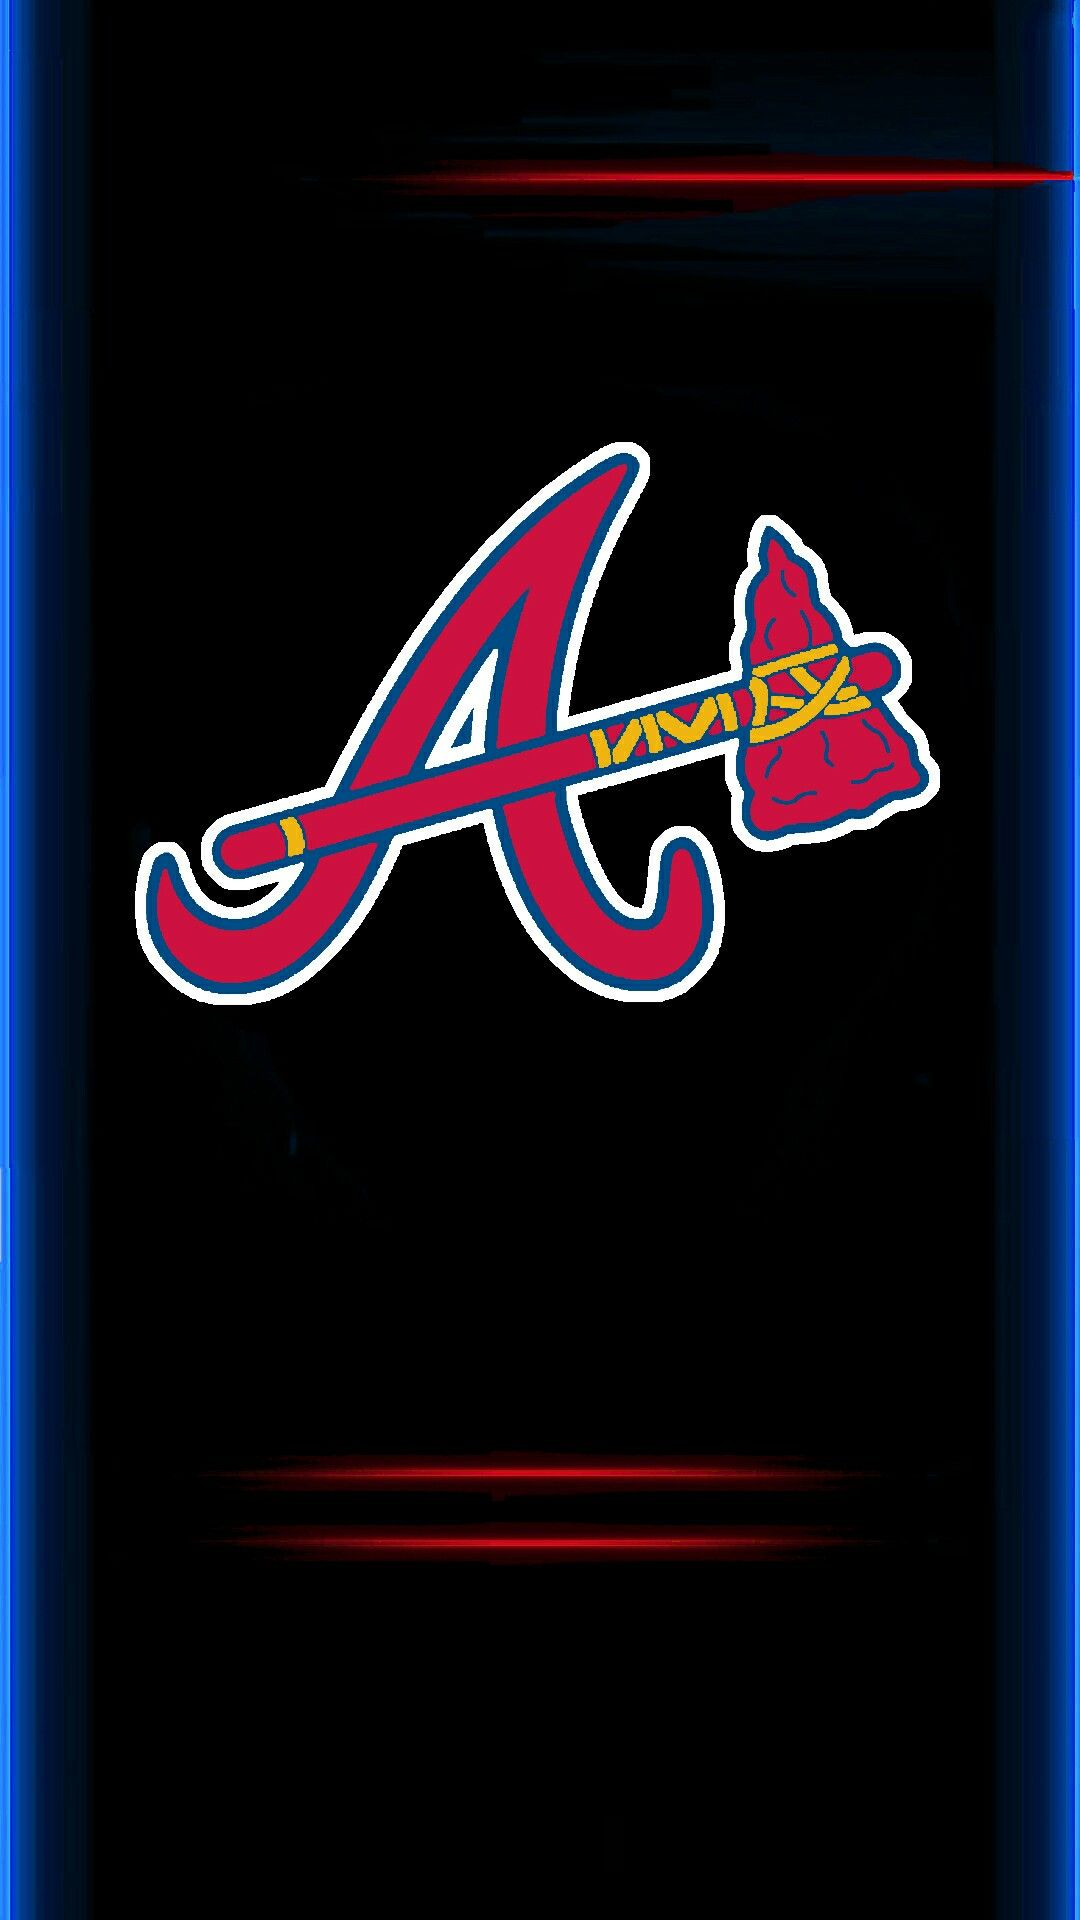 Atlanta Braves Atlanta Braves Wallpaper Atlanta Braves Baseball Atlanta Braves